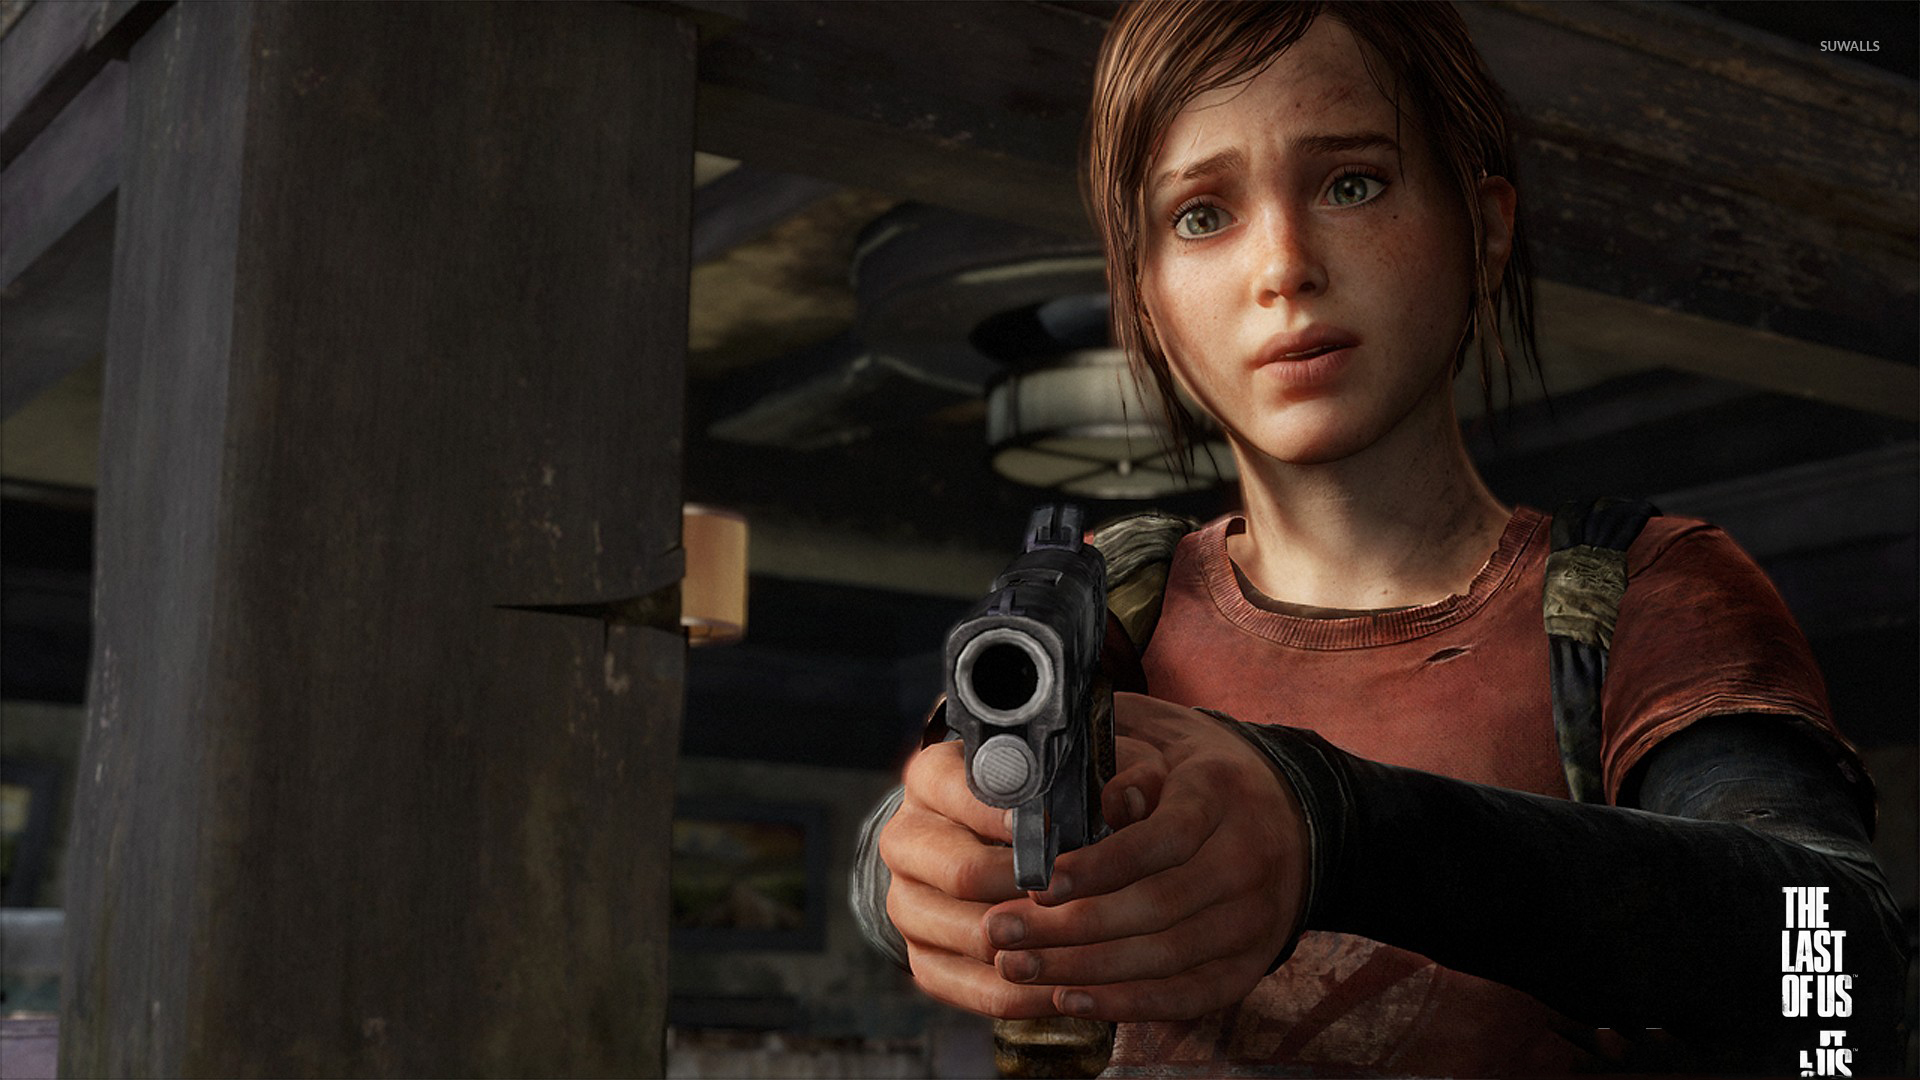 Ellie The Last Of Us 3 Wallpaper Game Wallpapers 28230